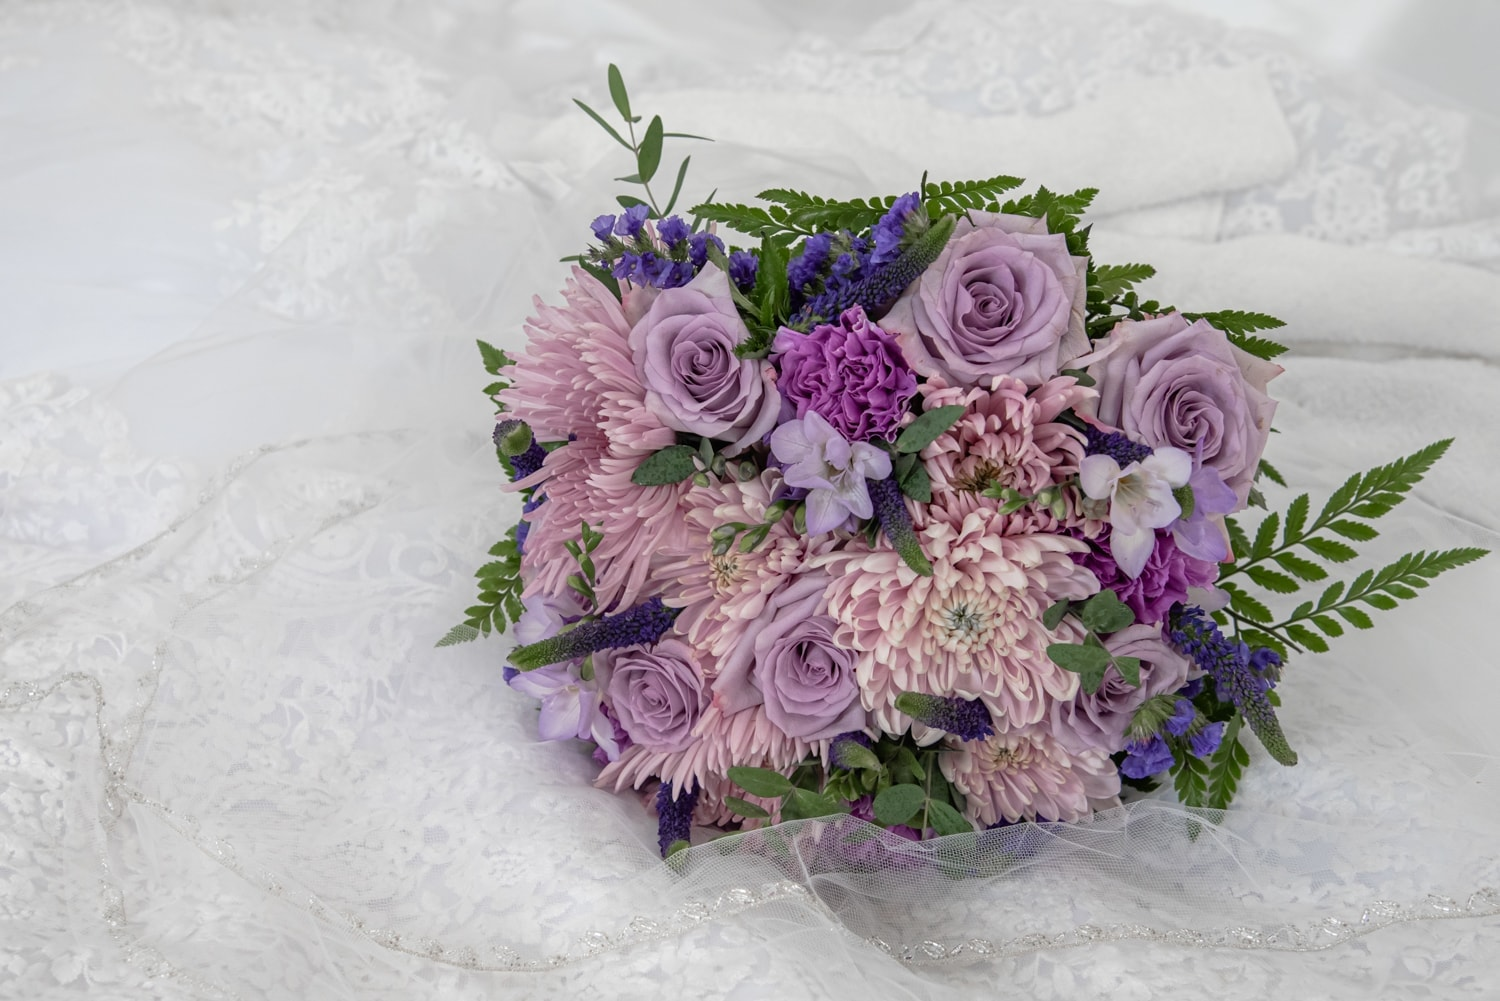 An arrangement of purple and pink flowers in a wedding bridal bouquet.